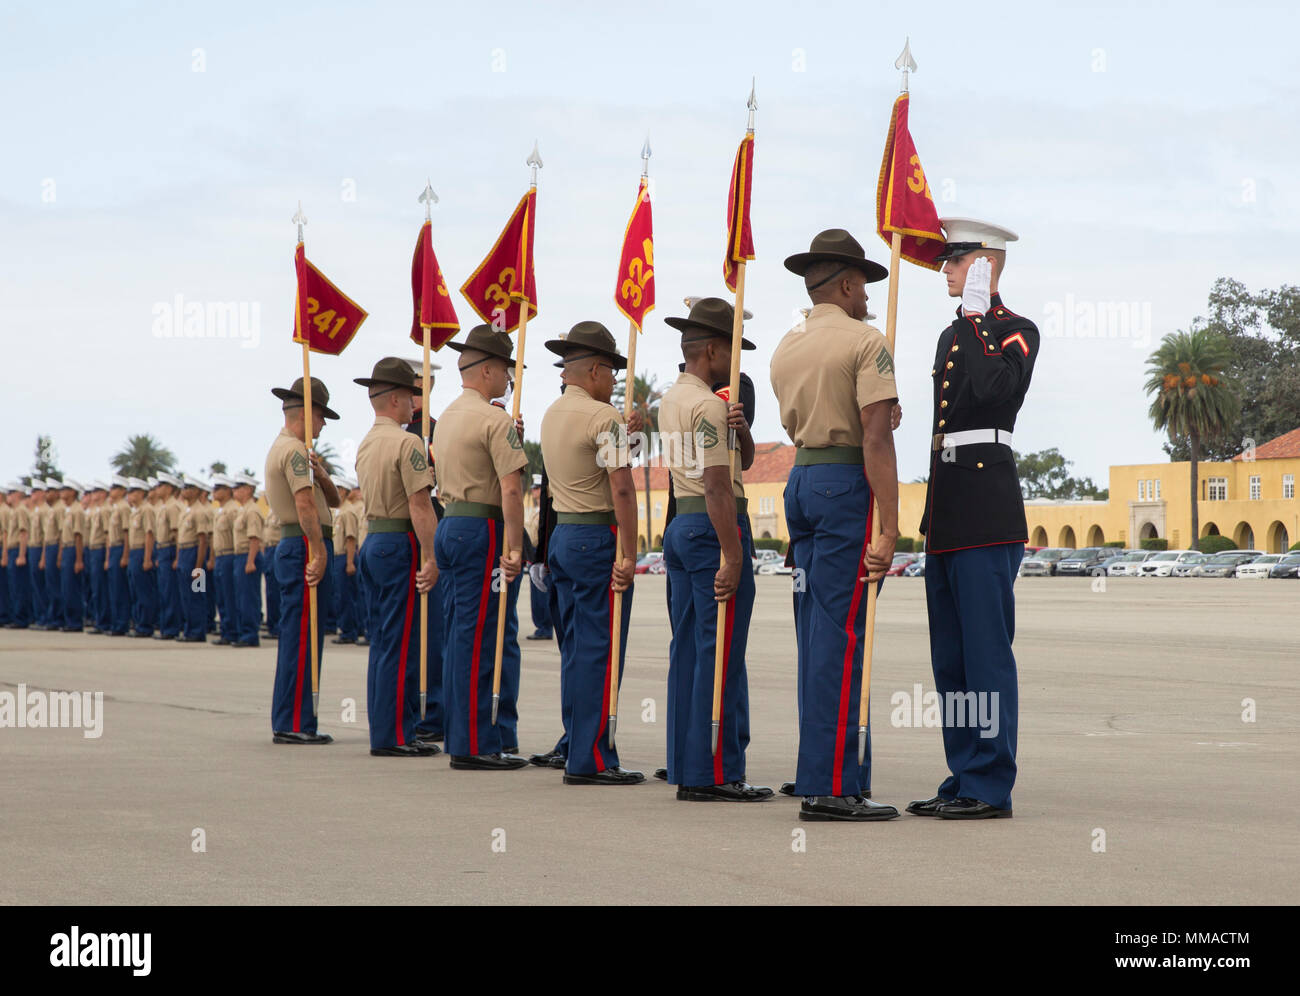 Will The Marine Corps Be Disbanded